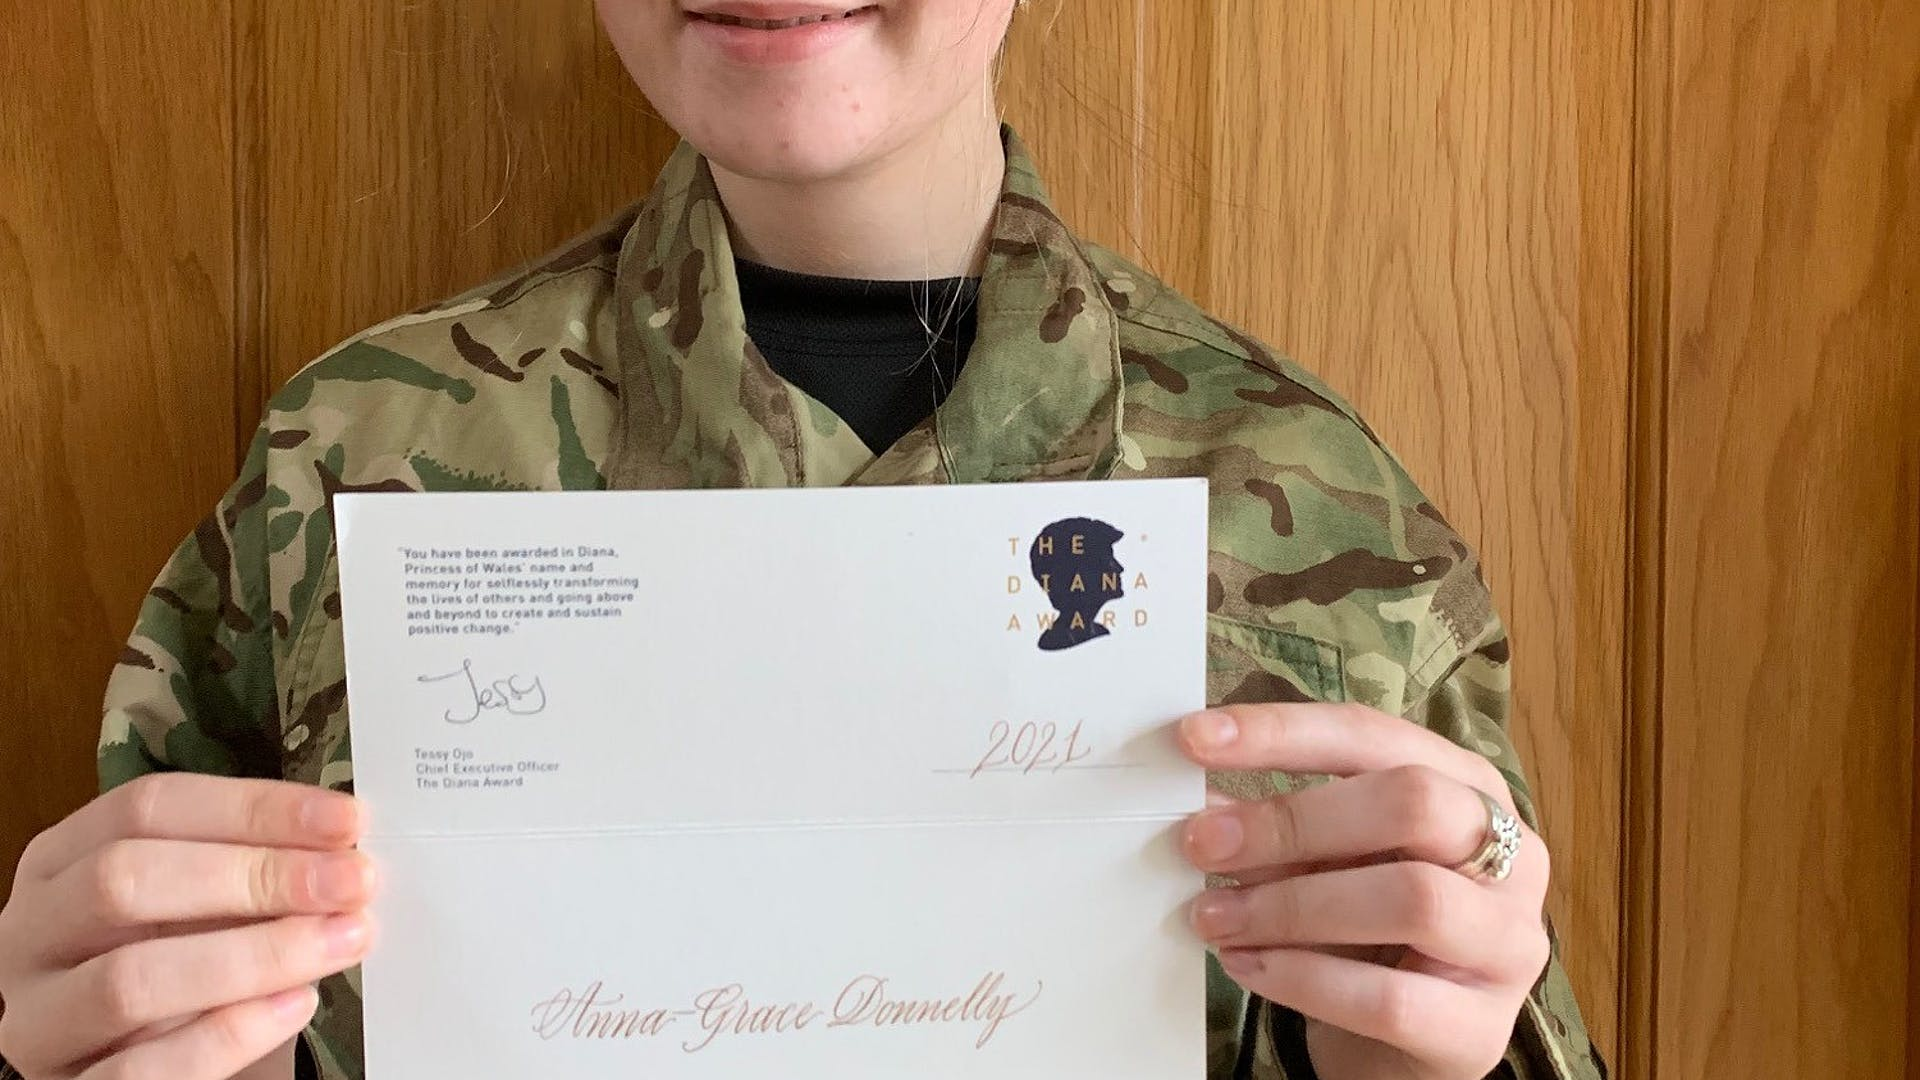 Cadet Anna Grace Donnelly has been recognised with the highest accolade a young person can achieve The Diane Award